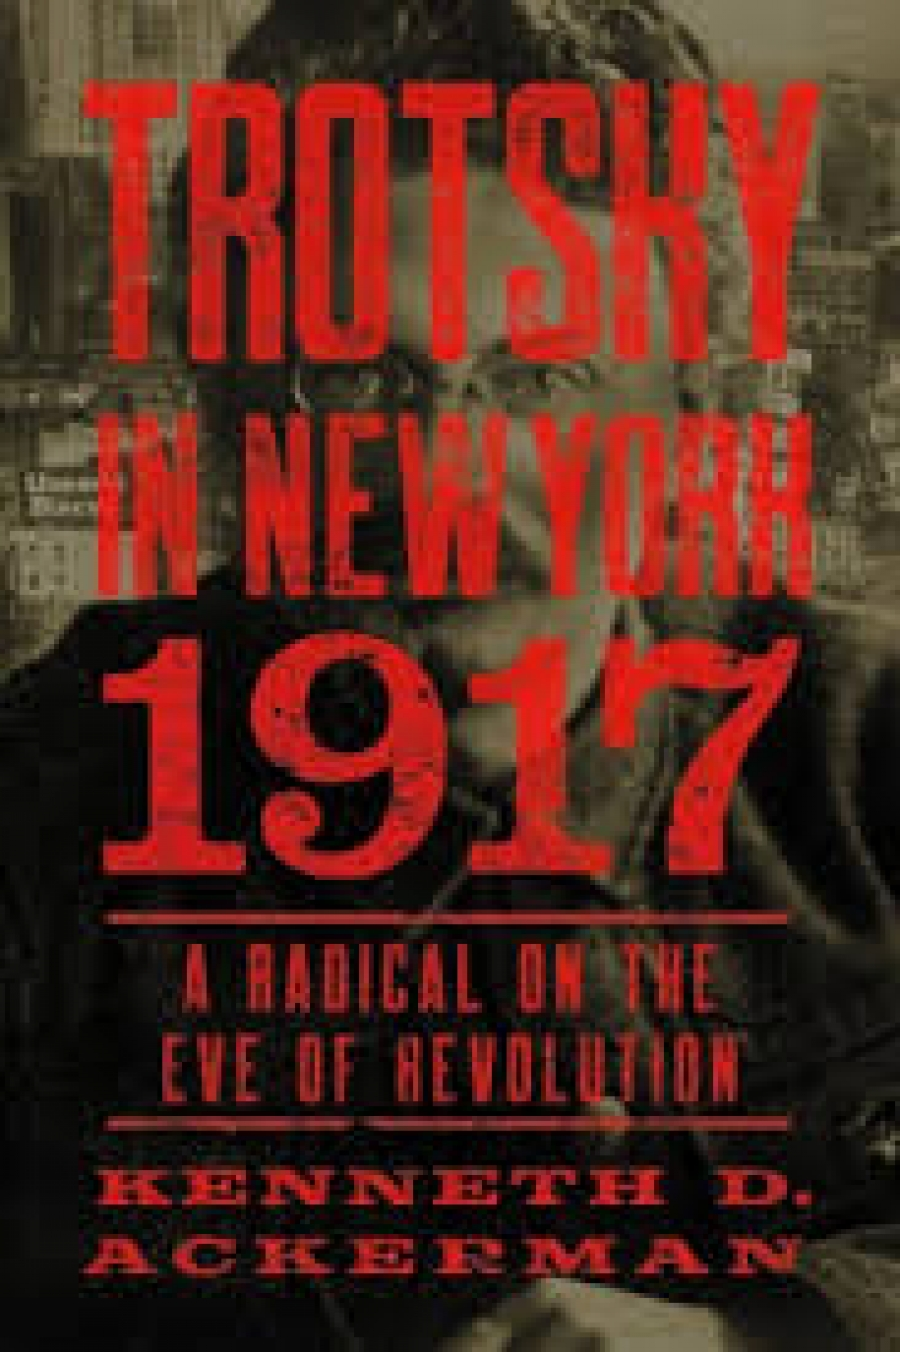 Ken Ackerman talks about his book Trotsky in NY 1917